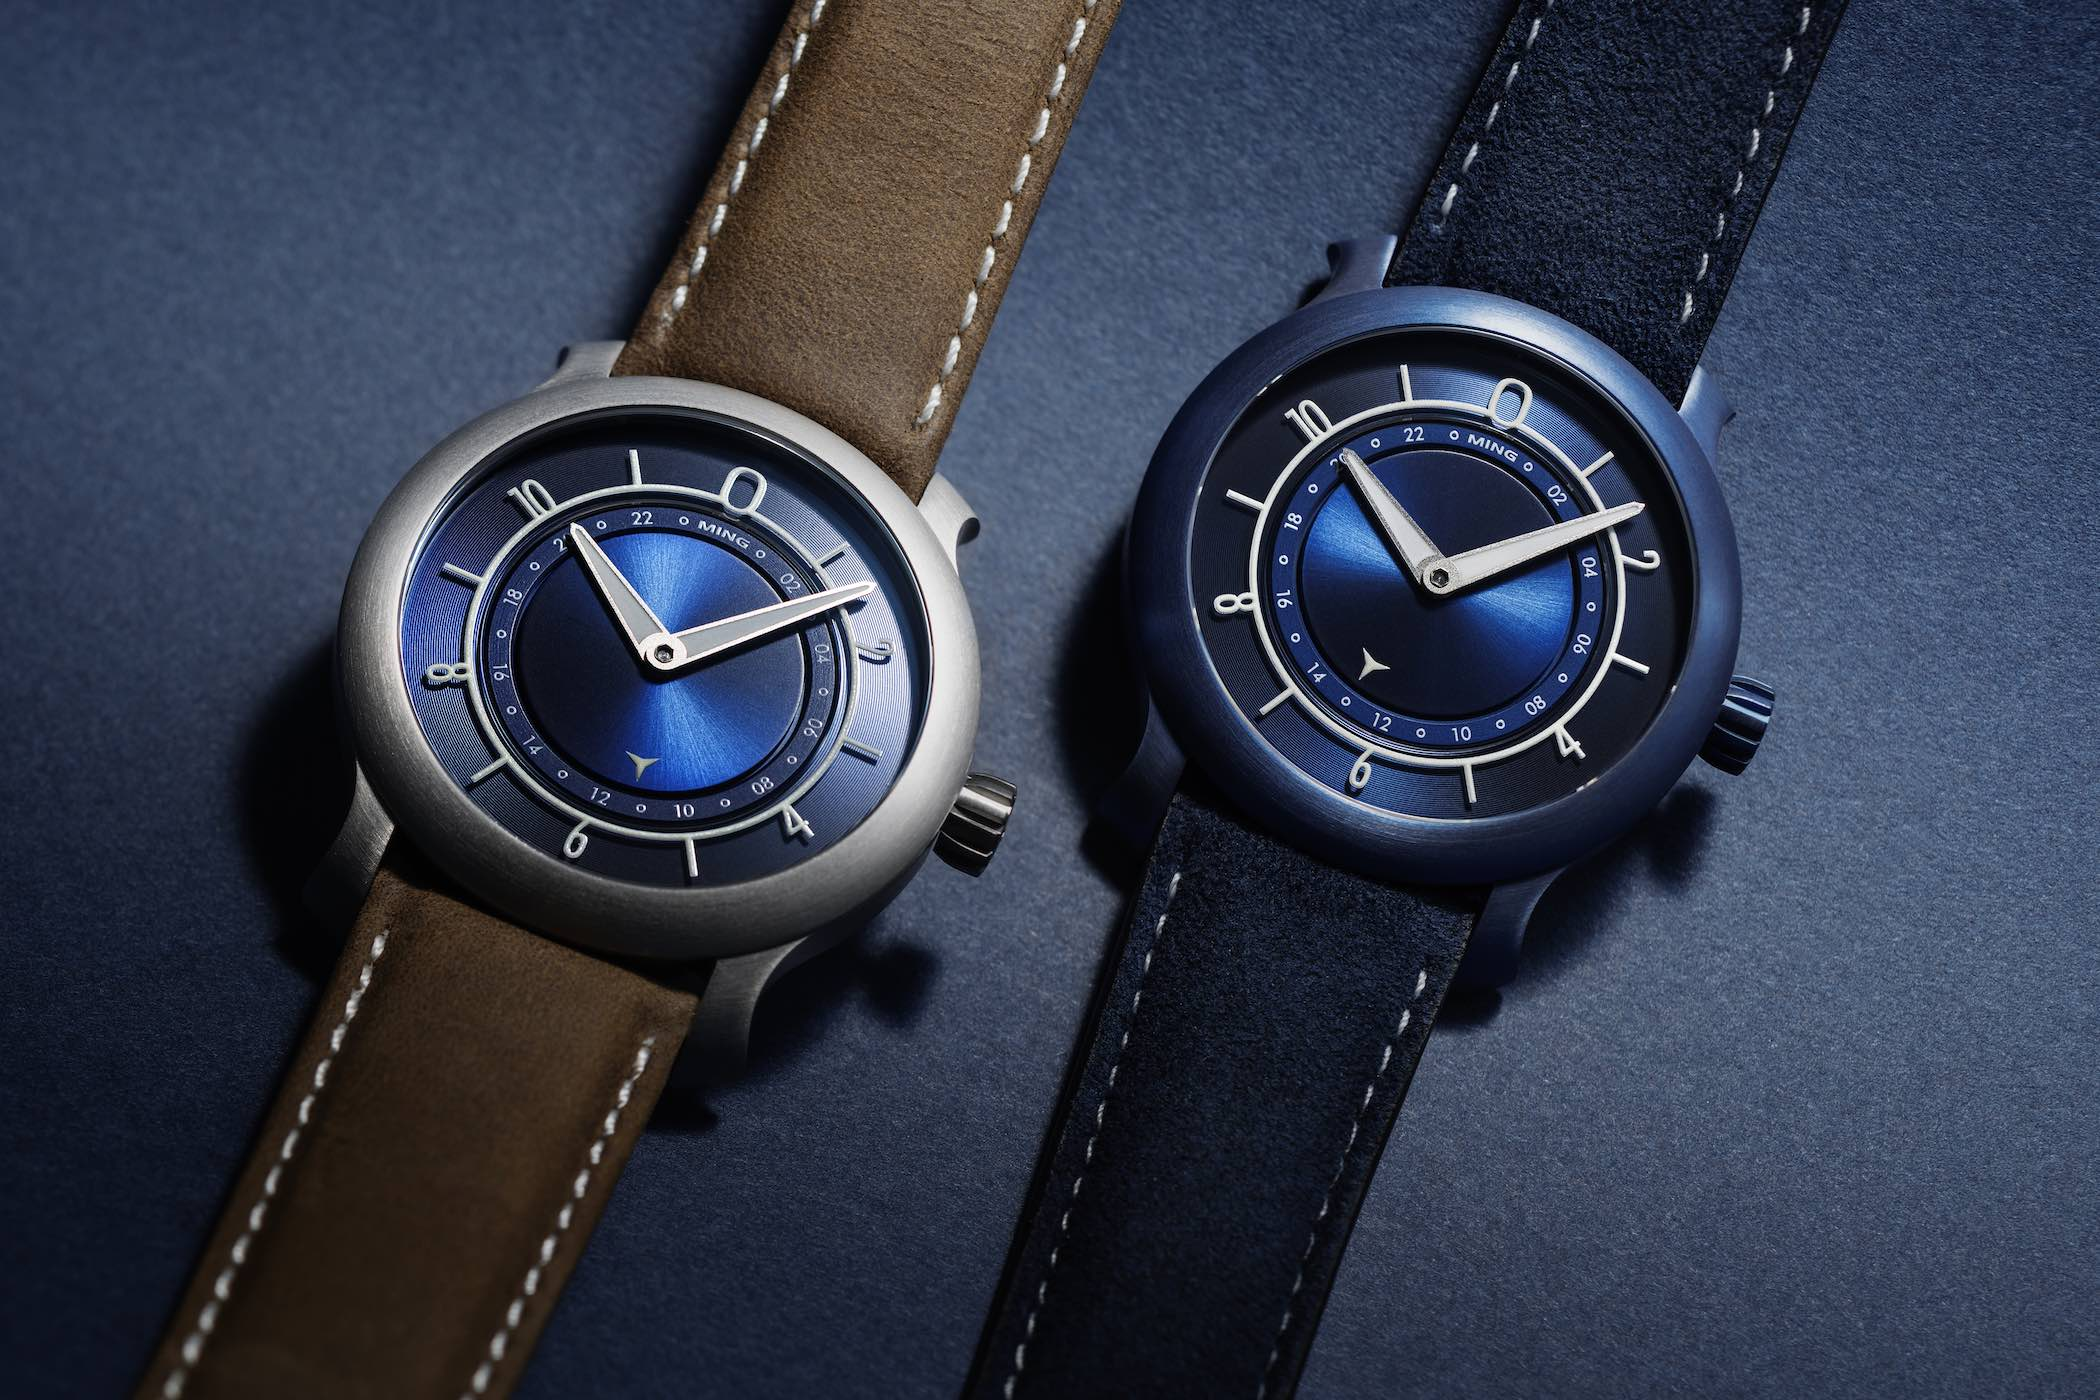 Ming 17.03 Ultra Blue - Ming 17.03 Blue - anniversary limited editions